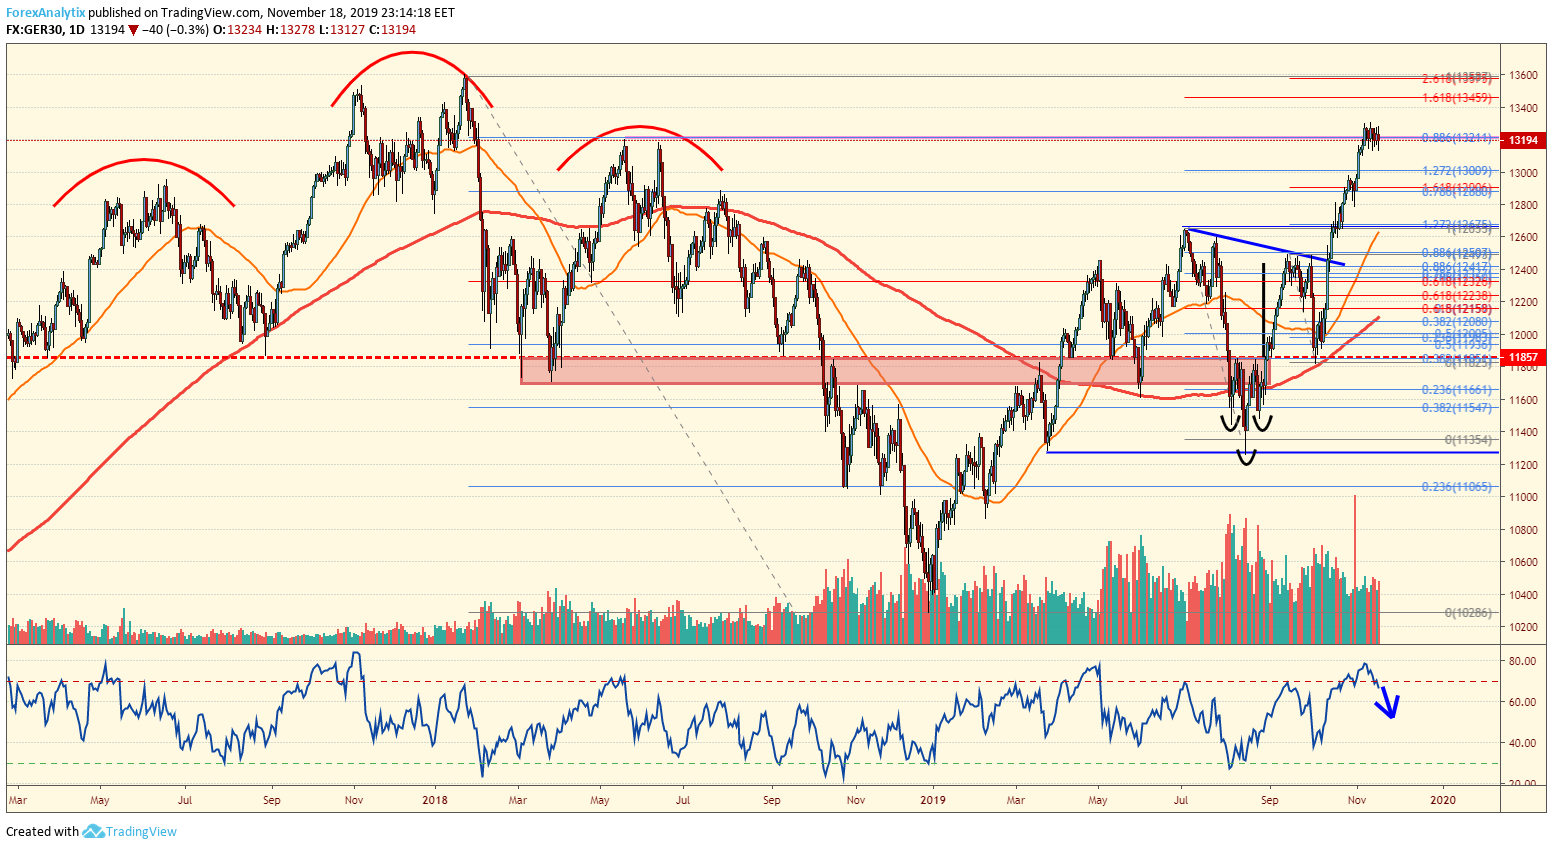 DAX at Resistance